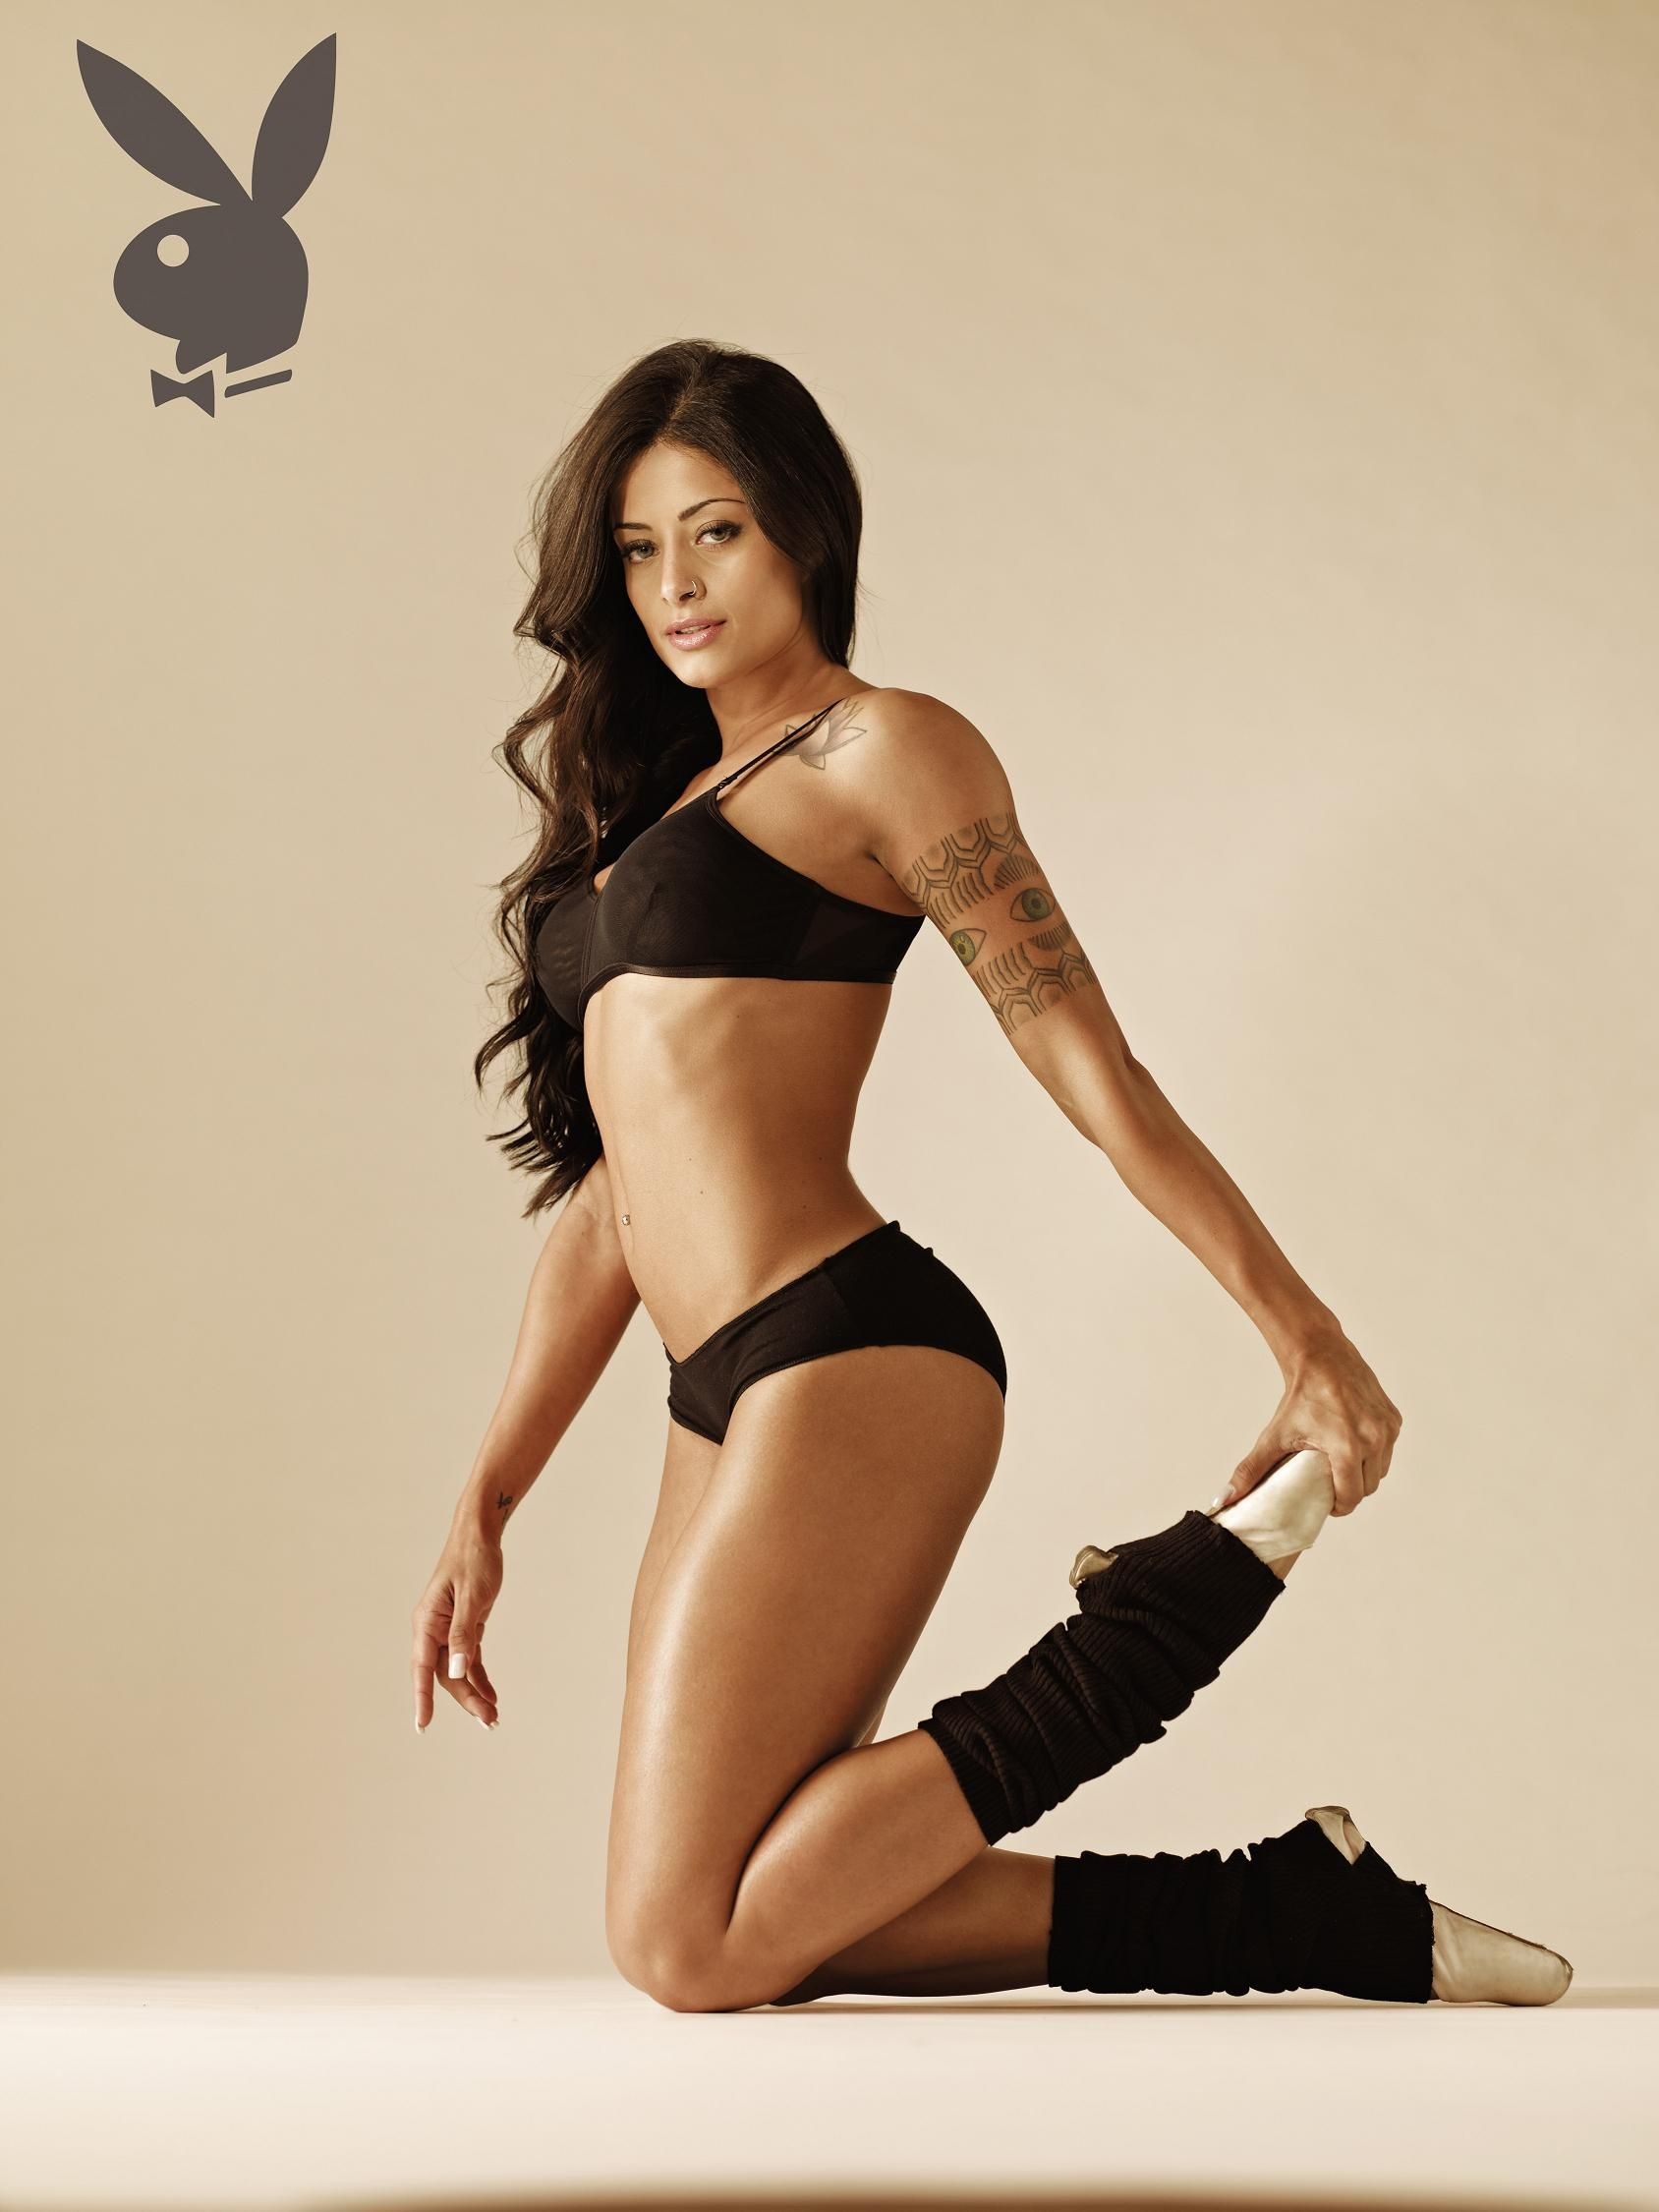 Aline Riscado Nua Na Playboy pin em 1 more knock out